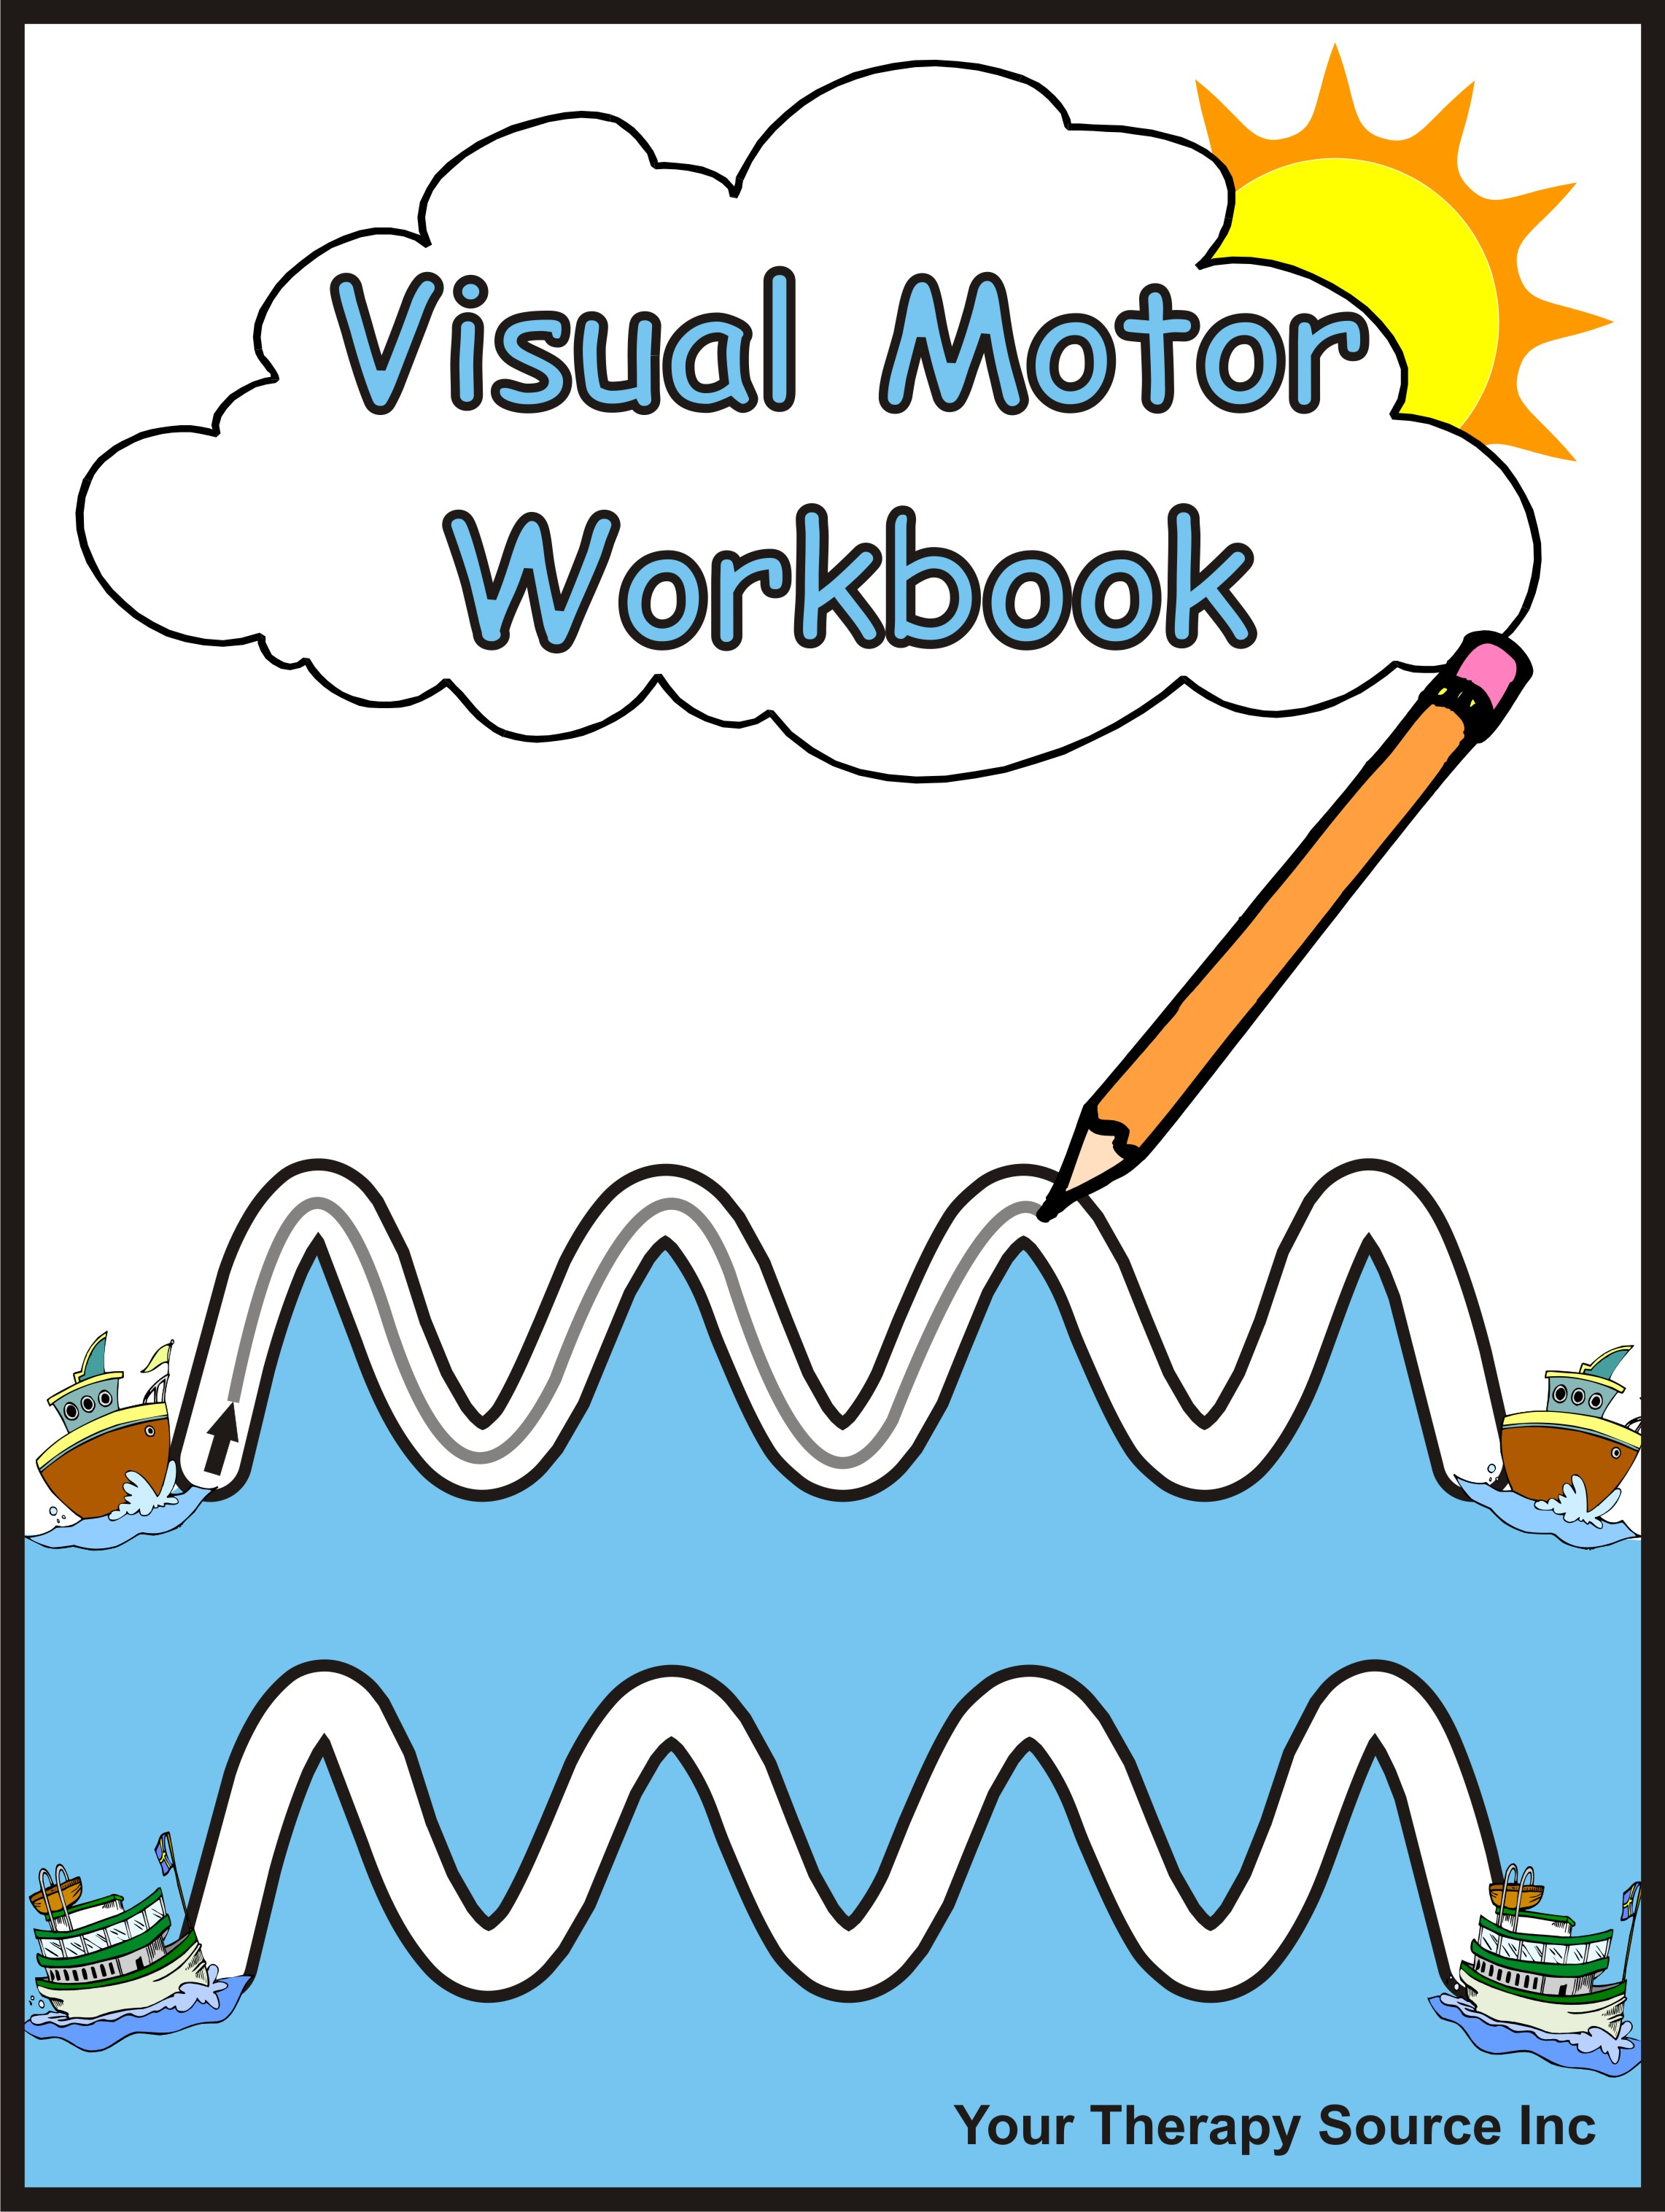 Visual Motor Workbook